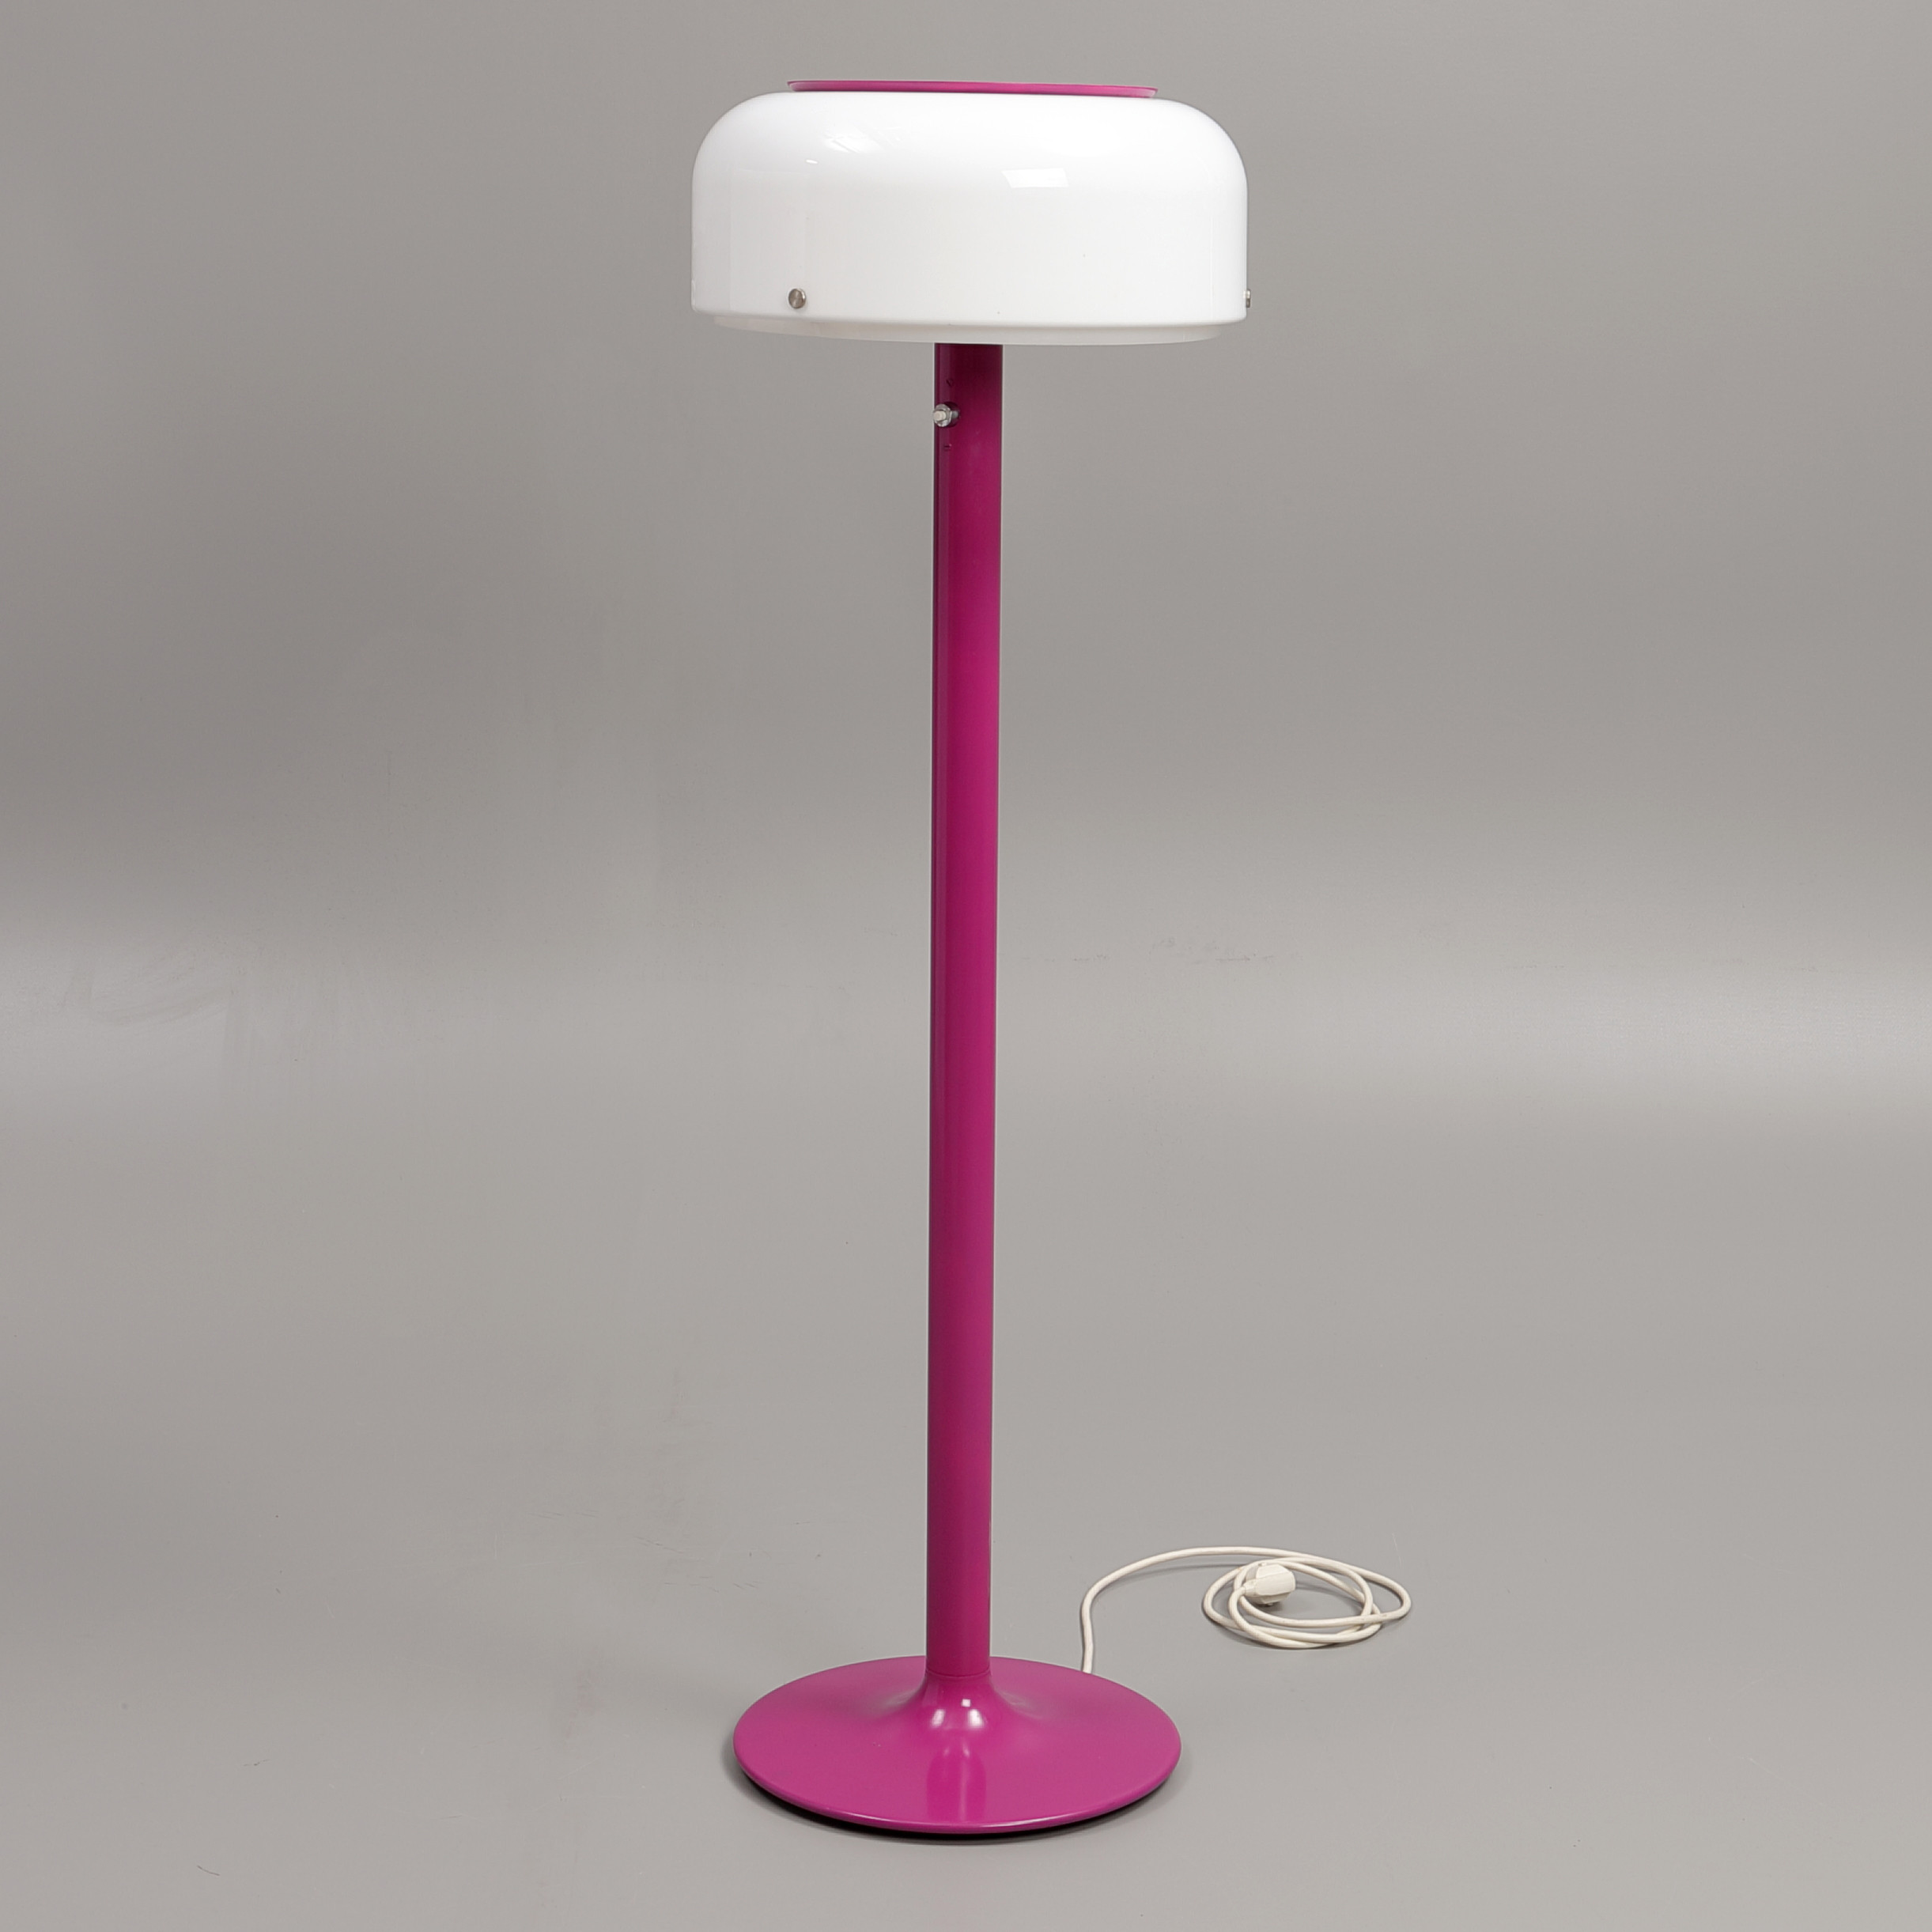 ANDERS PEHRSON, floor lamp,